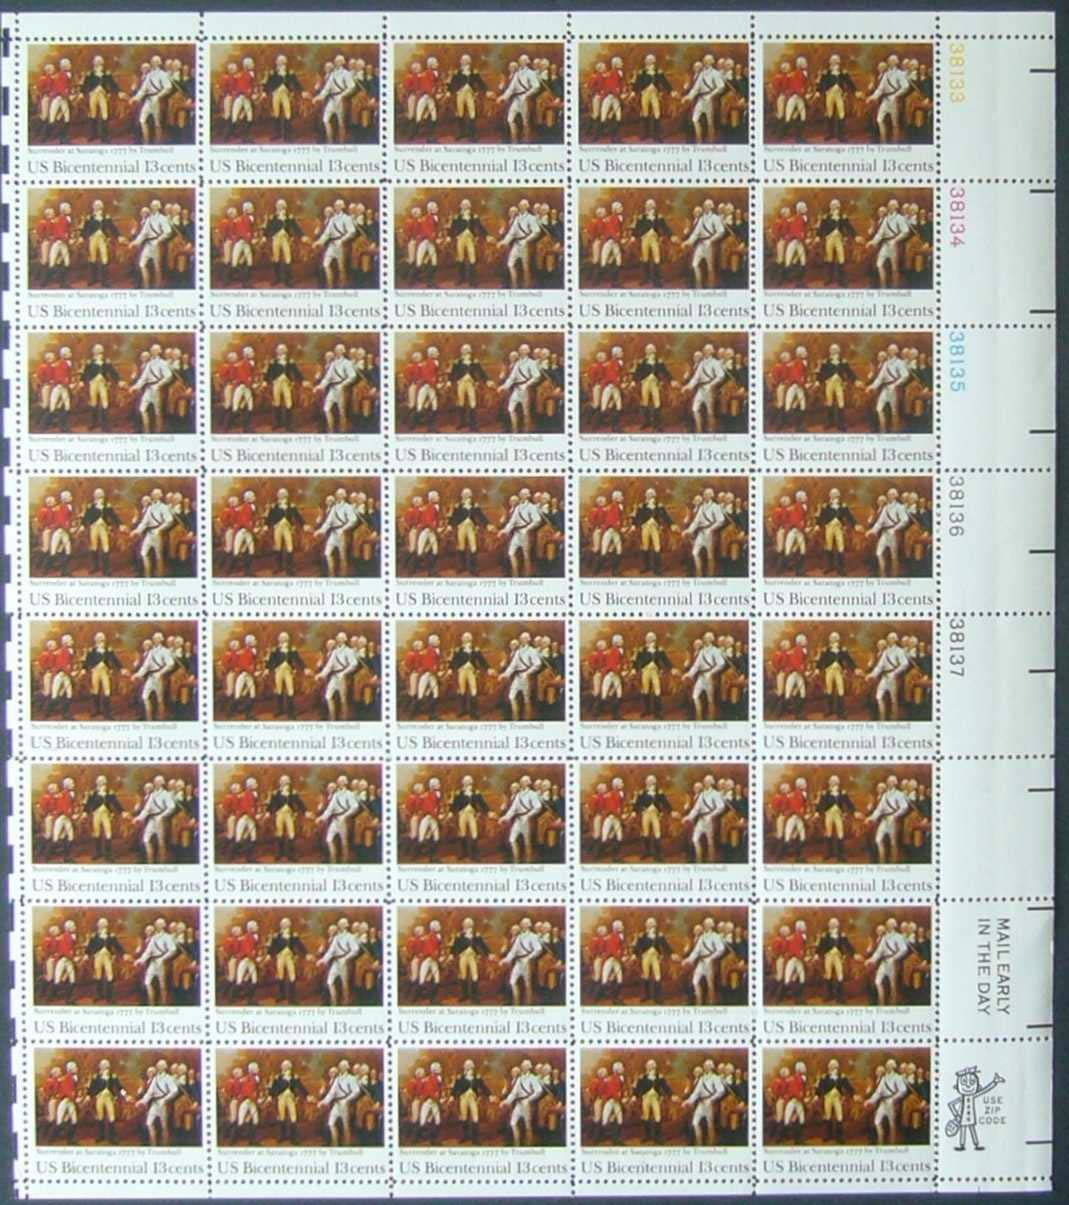 "Scott 1728 Sheet (13 cents) <p> <a href=""/images/USA-Scott-1728-Sheet.jpg""><font color=green><b>View the image</a></b></font>"